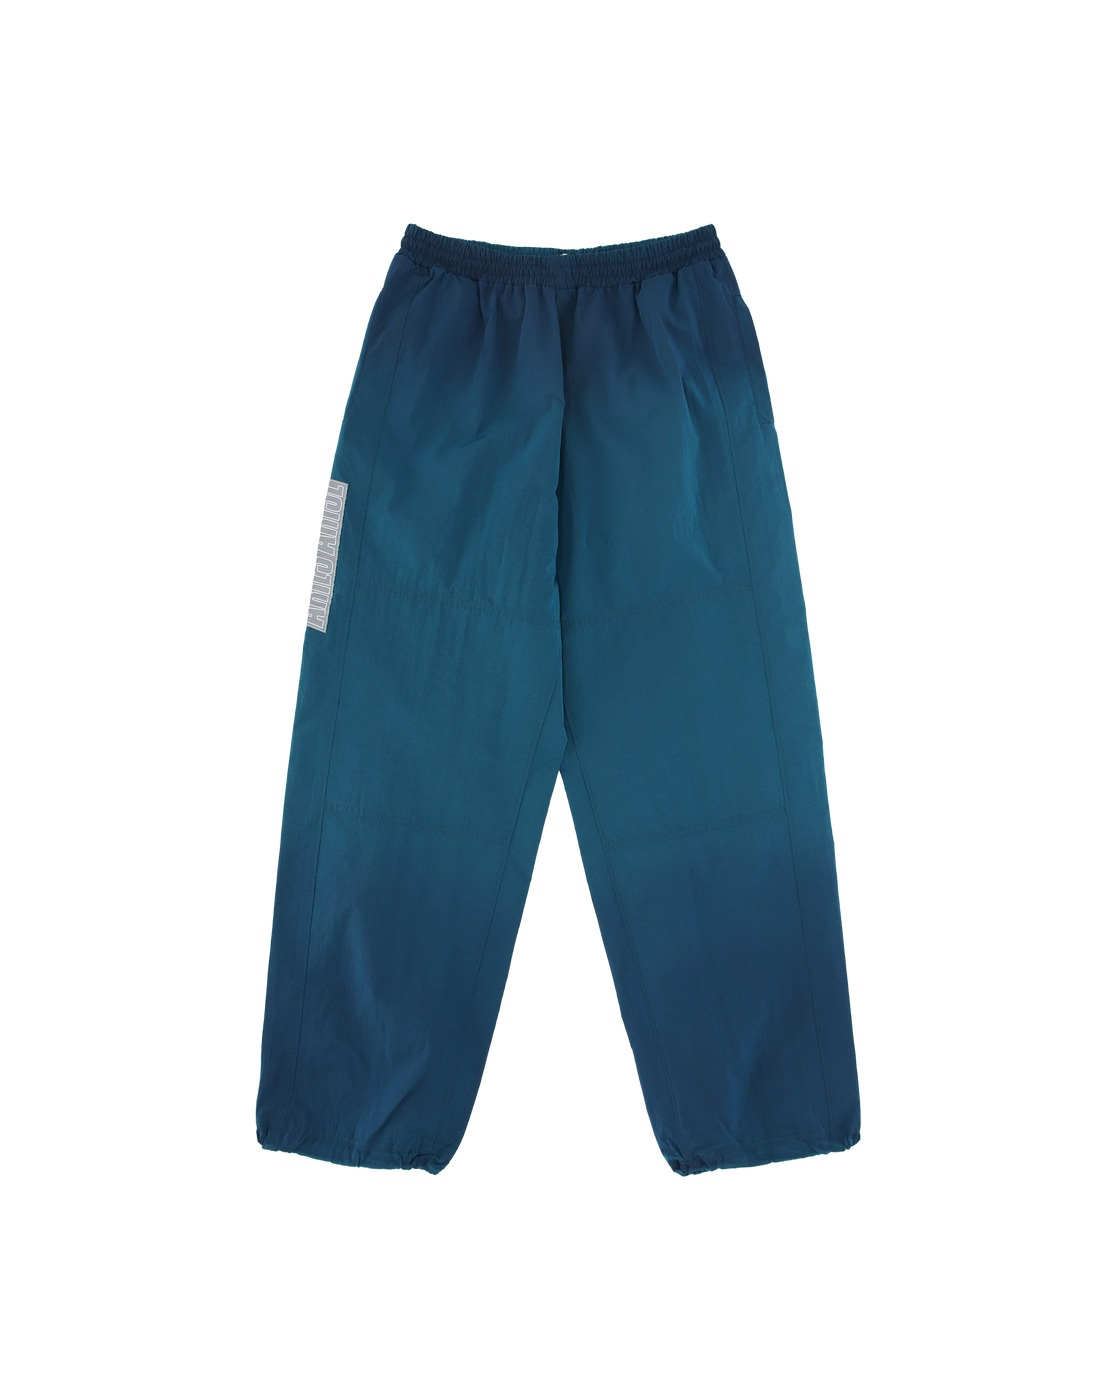 Aries Ombré Dyed Windcheater Pants Violet/Green